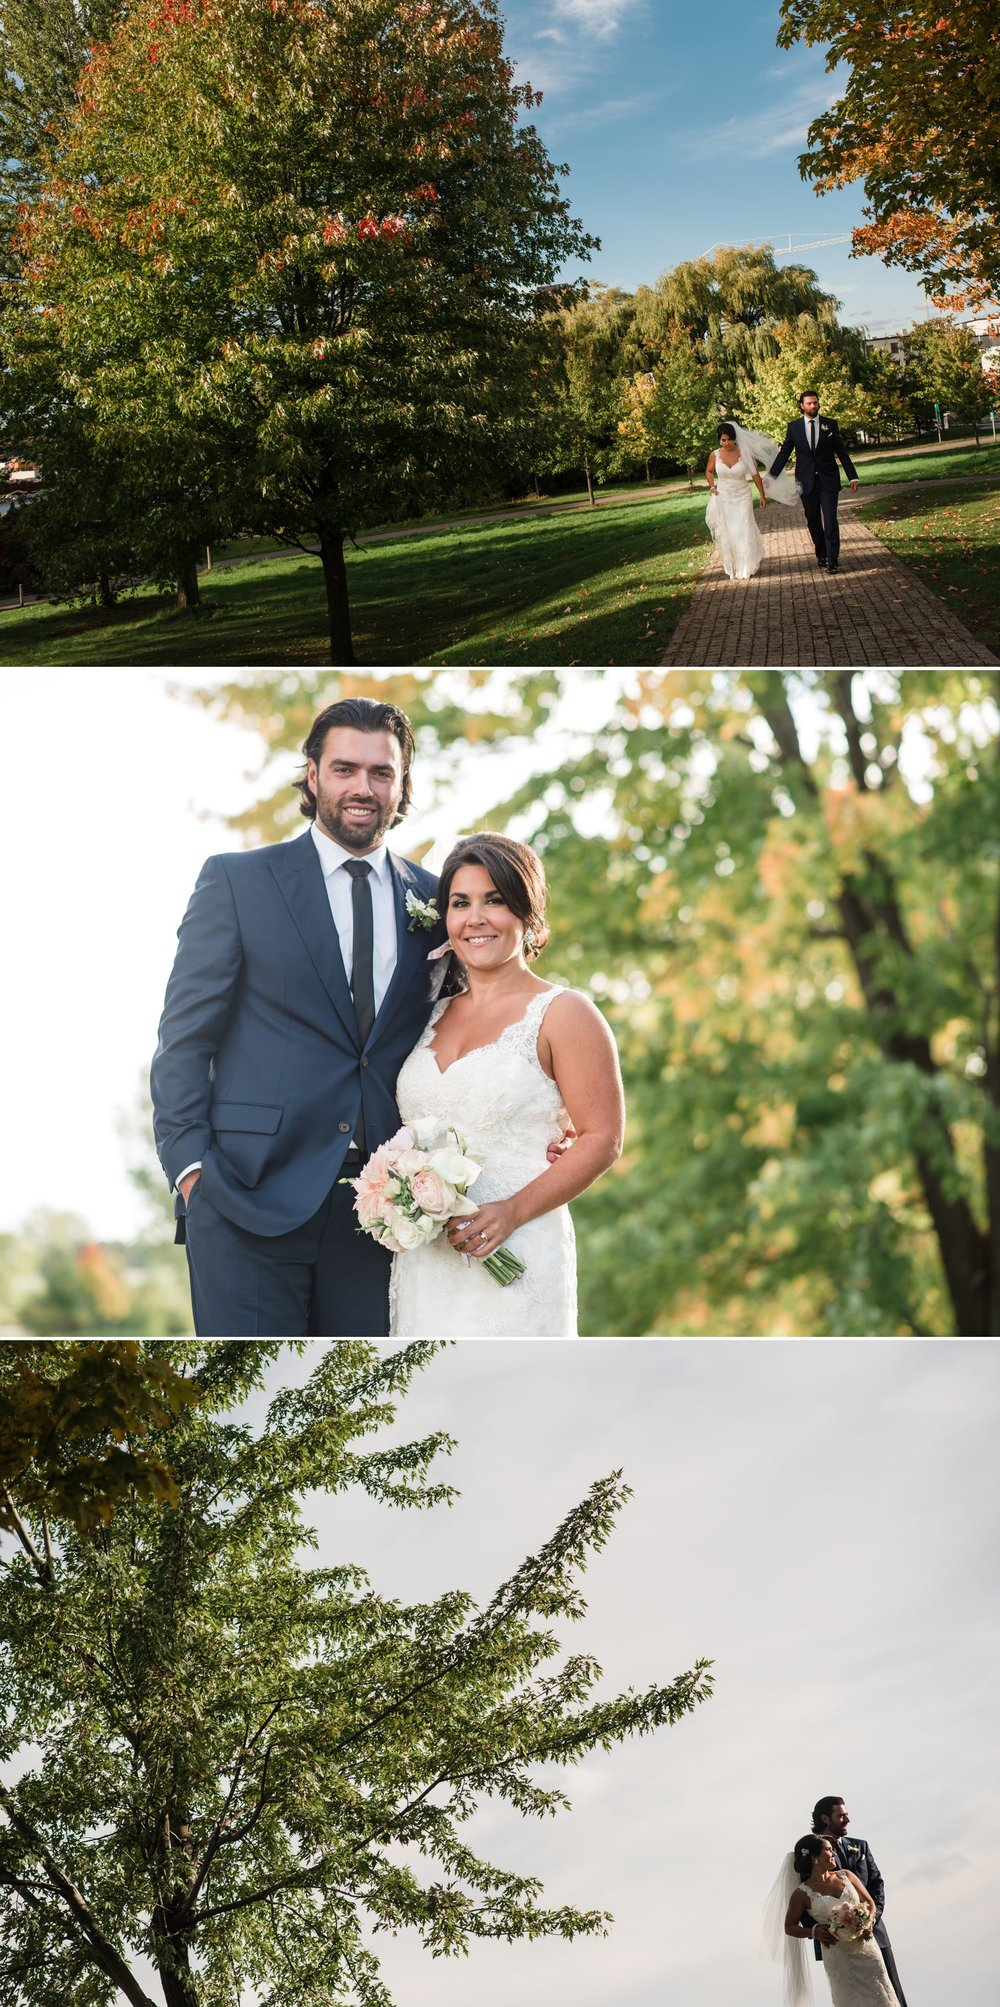 Wedding portraits of the bride and groom in a park in Ottawa